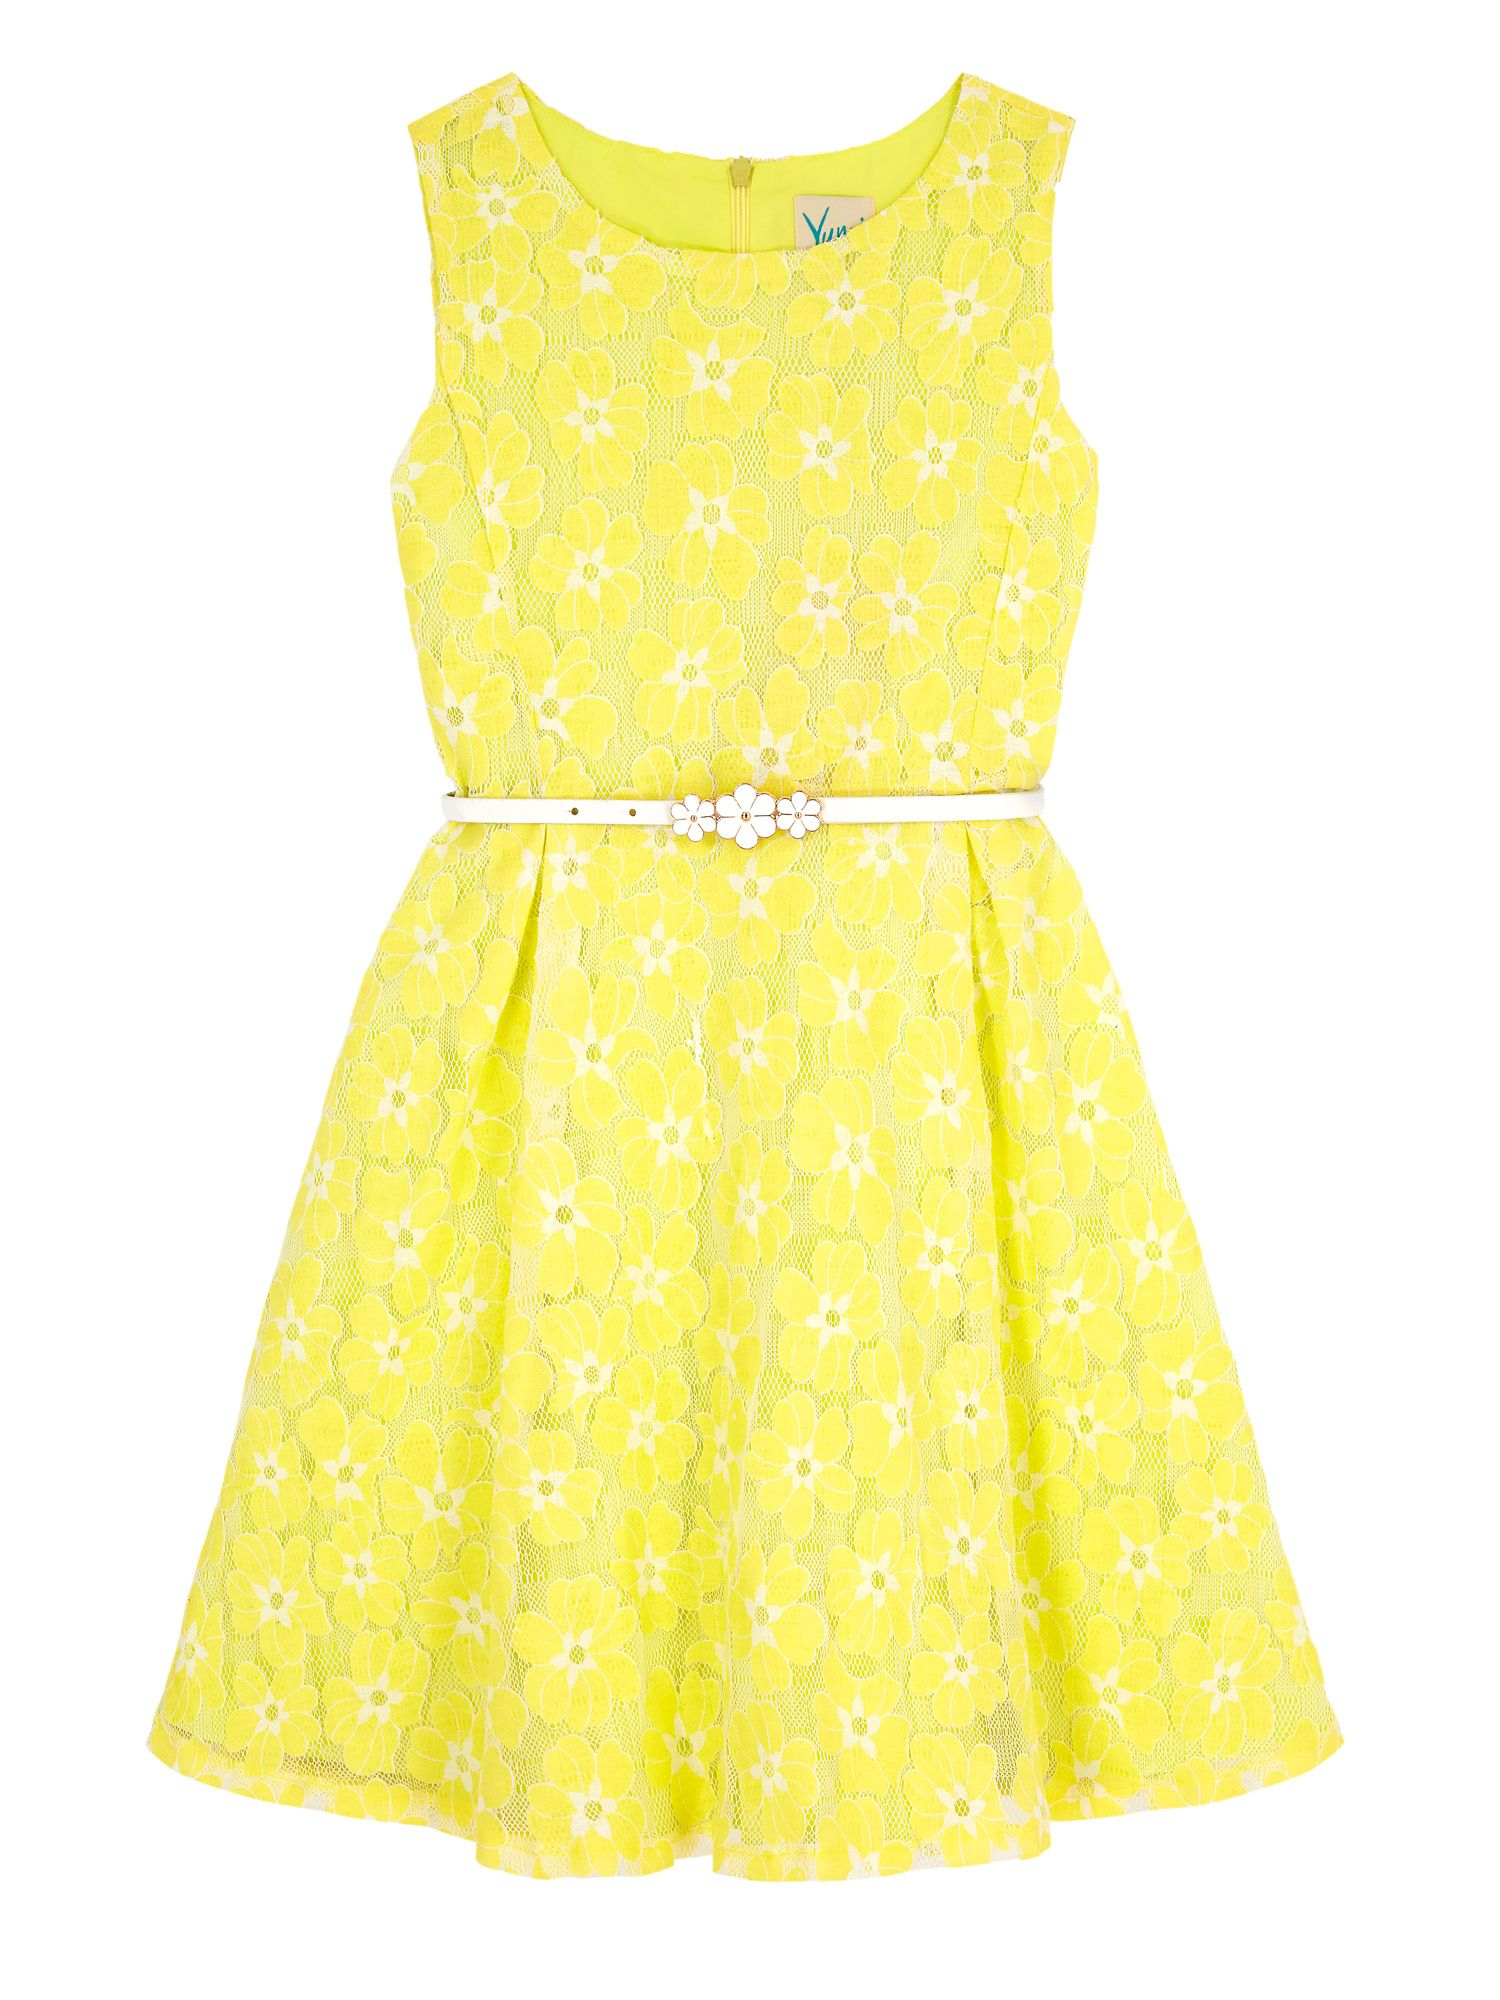 Yellow Dresses Girls | Dress images